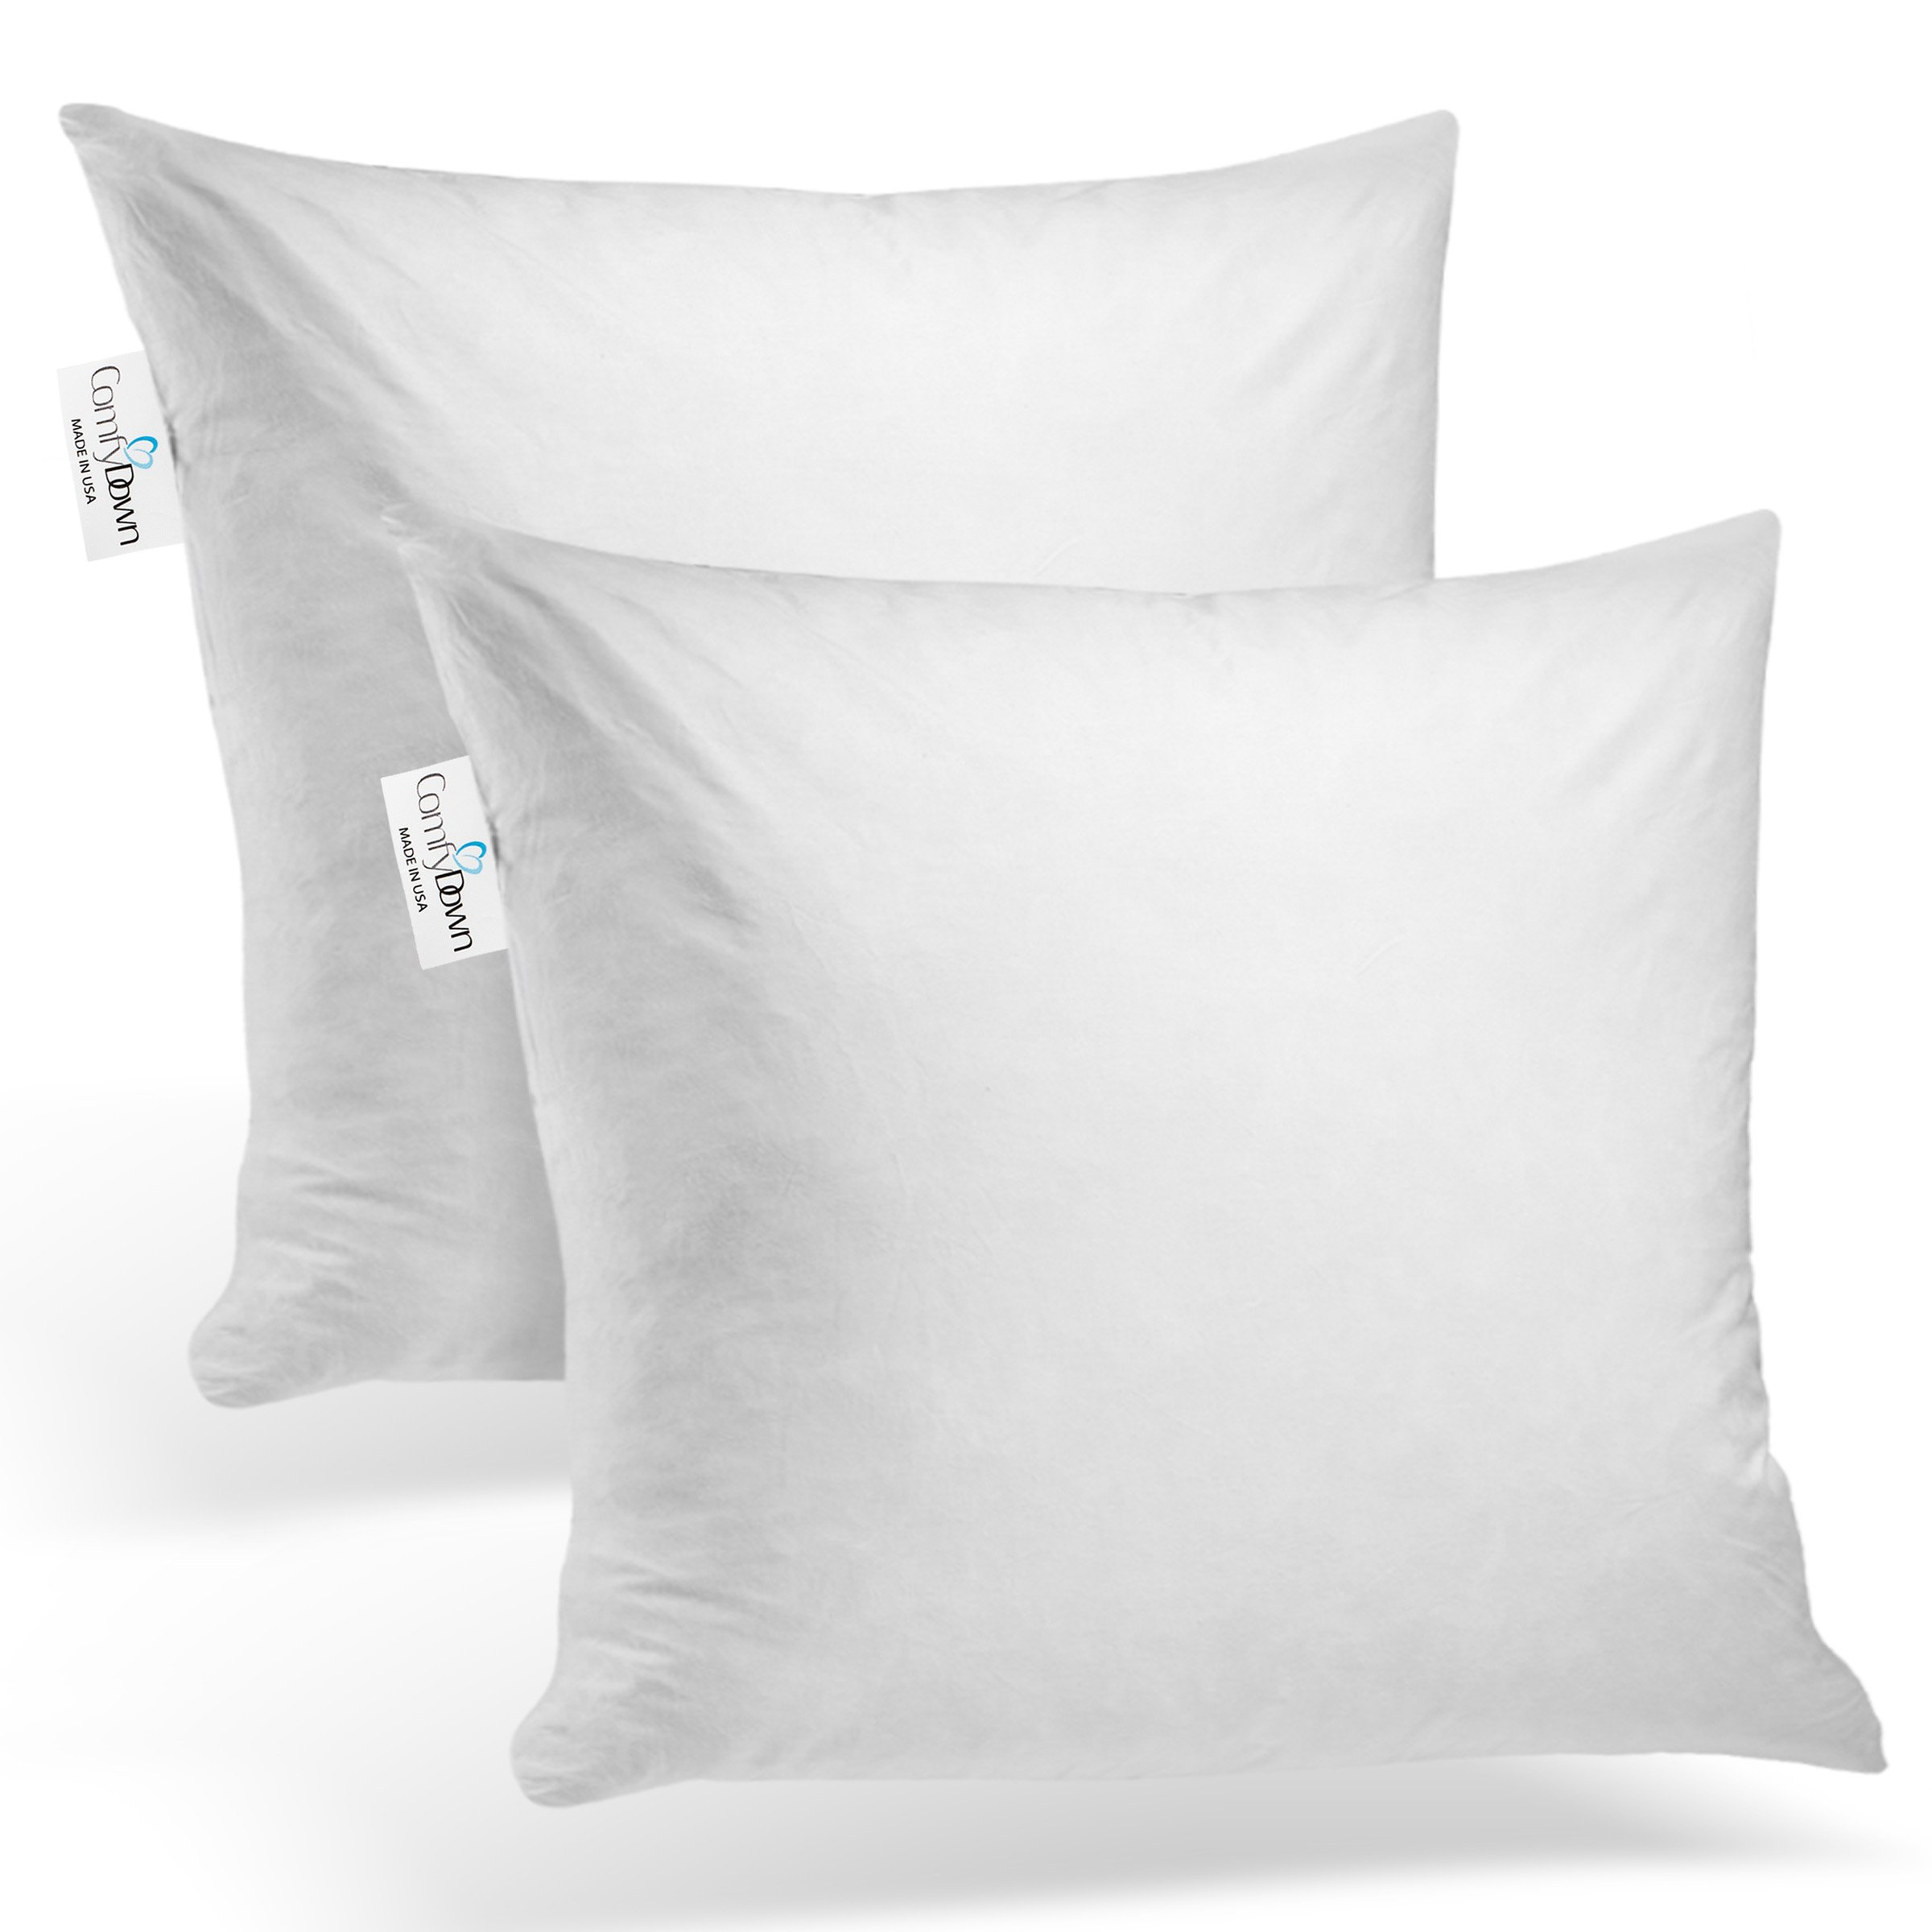 quality high x cushion inserts gallery goose pillow white down of